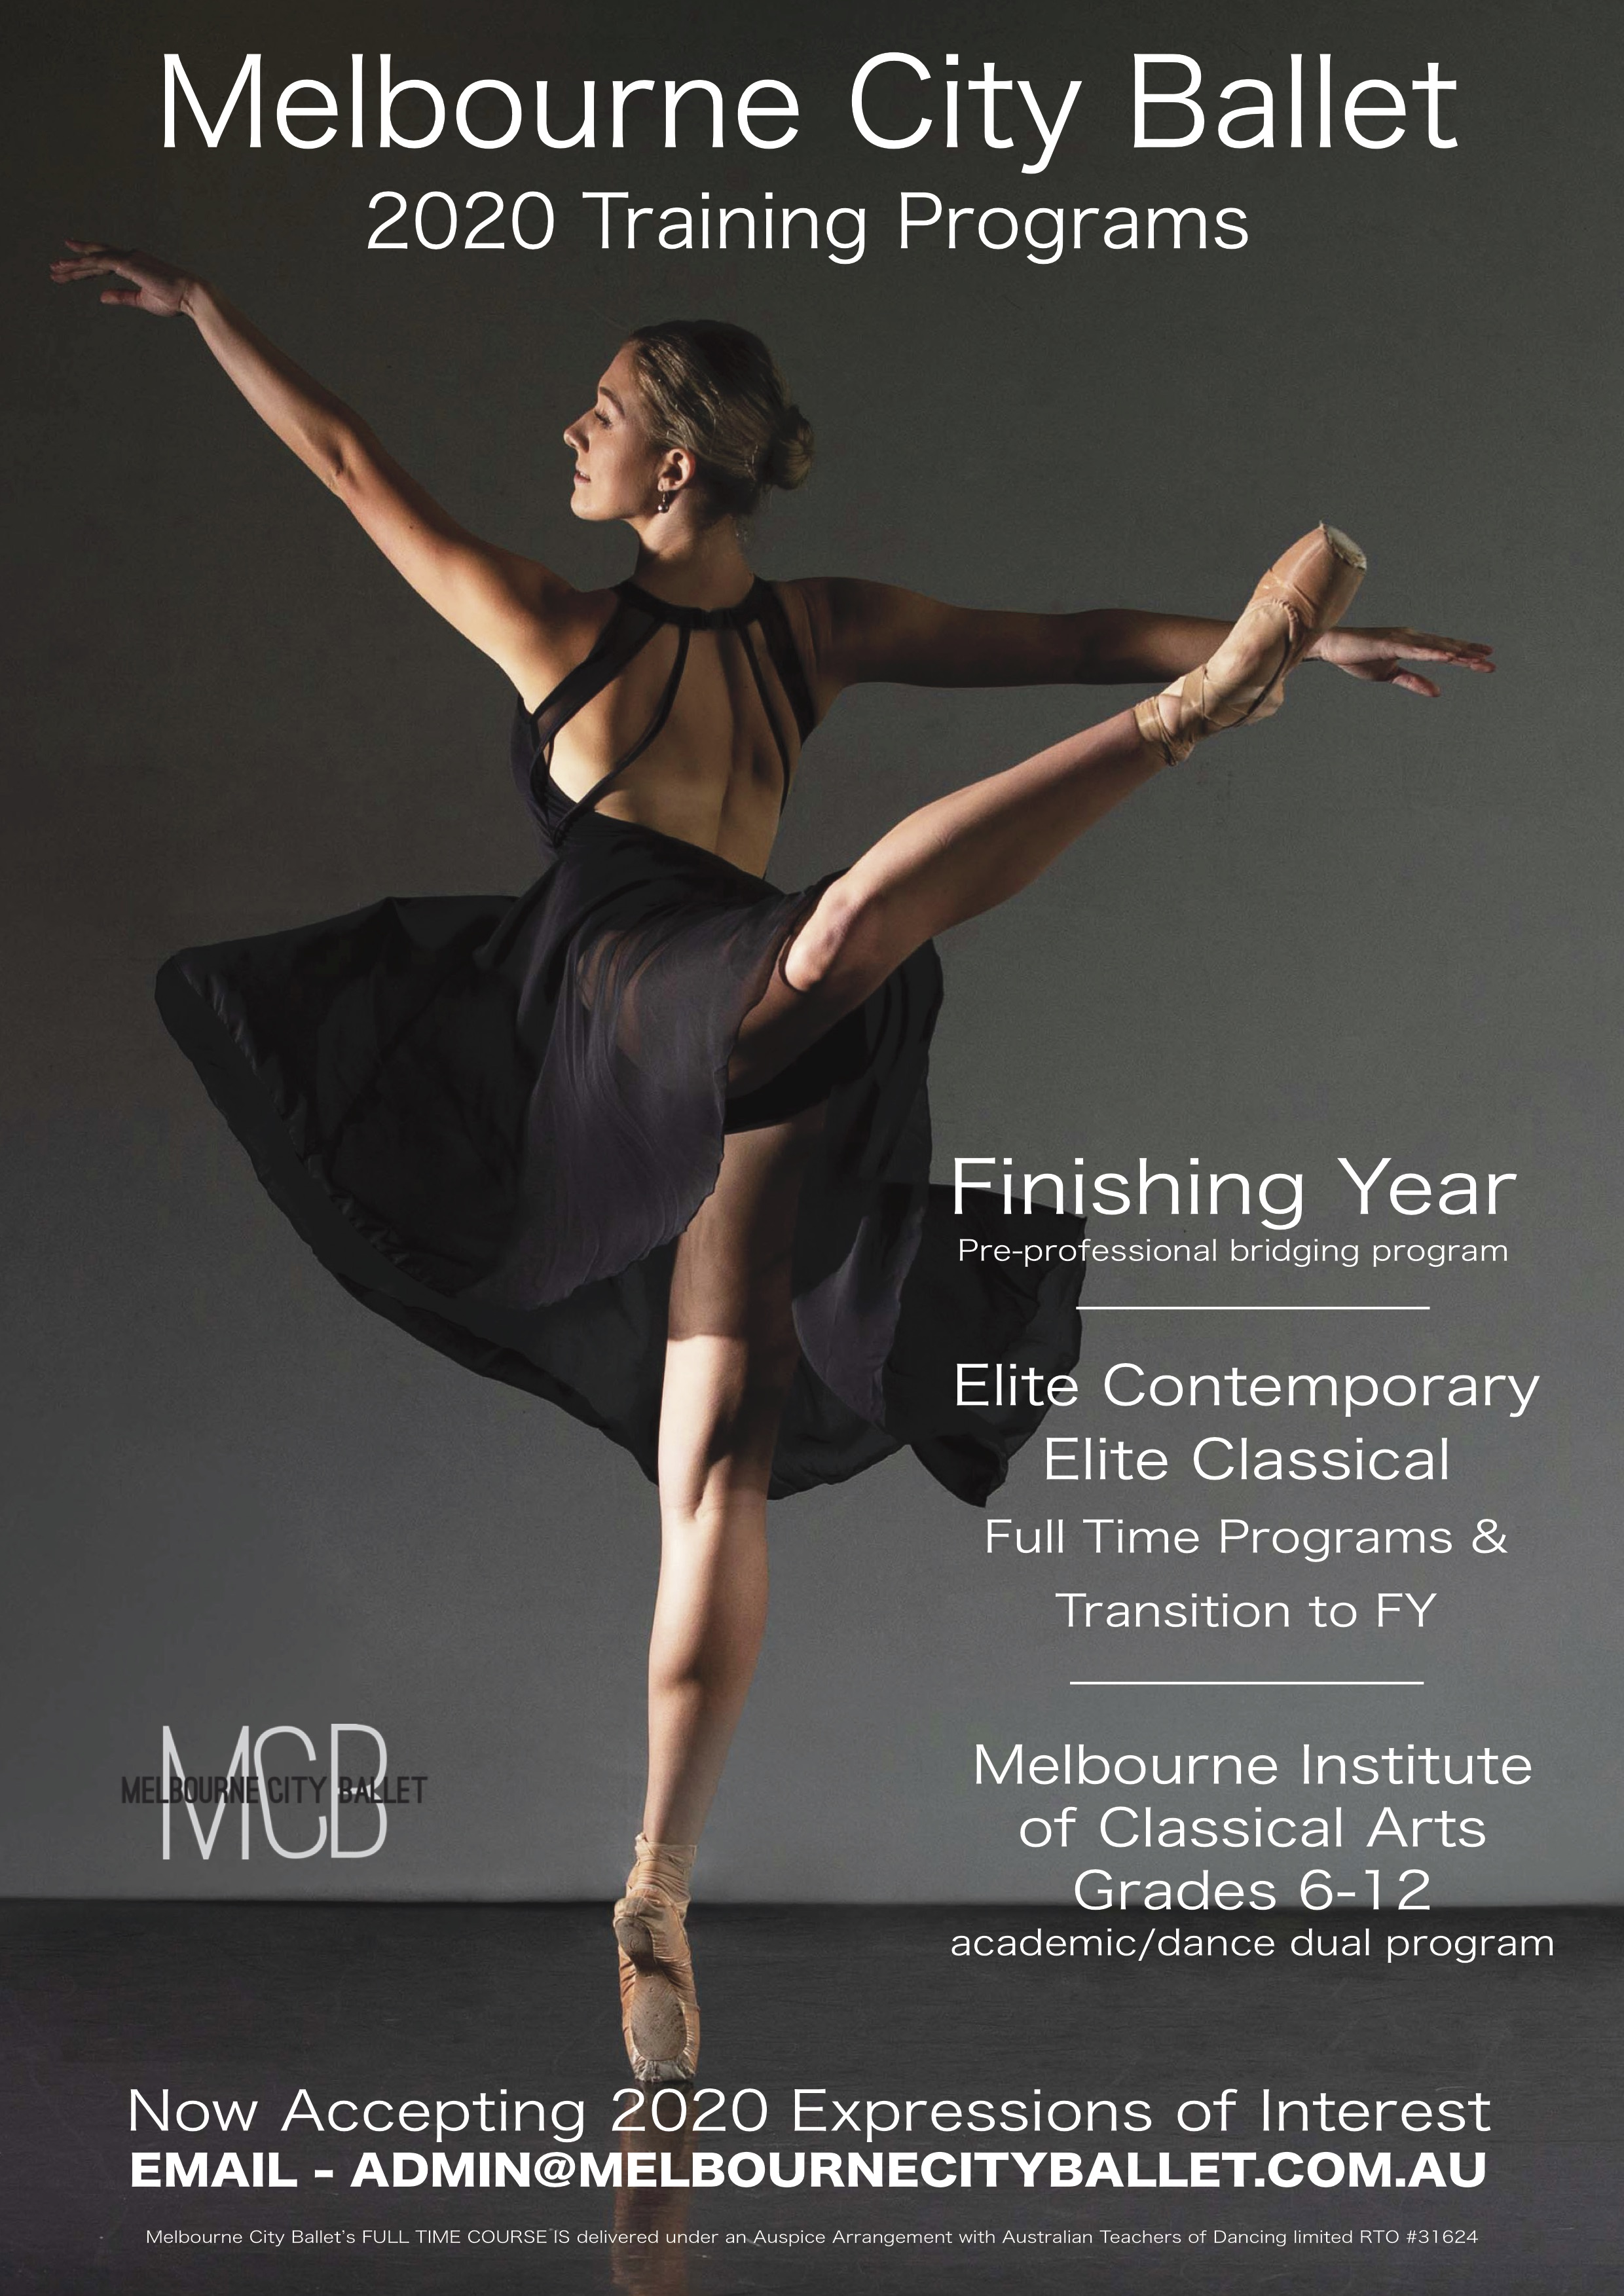 Looking to train or work in a challenging, supportive and healthy studio environment?   Auditions for Melbourne City Ballet's professional artist positions and training programs for 2020 have now opened. Come join us for what is set to be an exciting year in 2020 being guided by the company's Senior Staff members.   Positions will be available for the following:   Company Artist  Emerging Artist (Apprentice/Intern Program) - Classical  Finishing Year Artist (Pre-Professional Bridging Program) - Classical  Elite Artist Program (Full Time and Transition) in Classical, Contemporary and Musical Theatre Streaming  MICA - Melbourne Institute of Classical Arts (High School & Ballet program) Classical, Contemporary and Musical Theatre Streaming    Auditions will take place as follows:  MICA first round - 7th September 2019 (Melbourne)  MICA second round - 2nd of November 2019 (Melbourne)  FY, Emerging Artist, Elite Artist and Company - 21st September 2019 (Melbourne)  FY, Emerging Artist, Elite Artist, MICA and Company - 5th October 2019 (Sydney)  FY, Emerging Artist, Elite Artist, MICA and Company - 20th October 2019 (Brisbane)